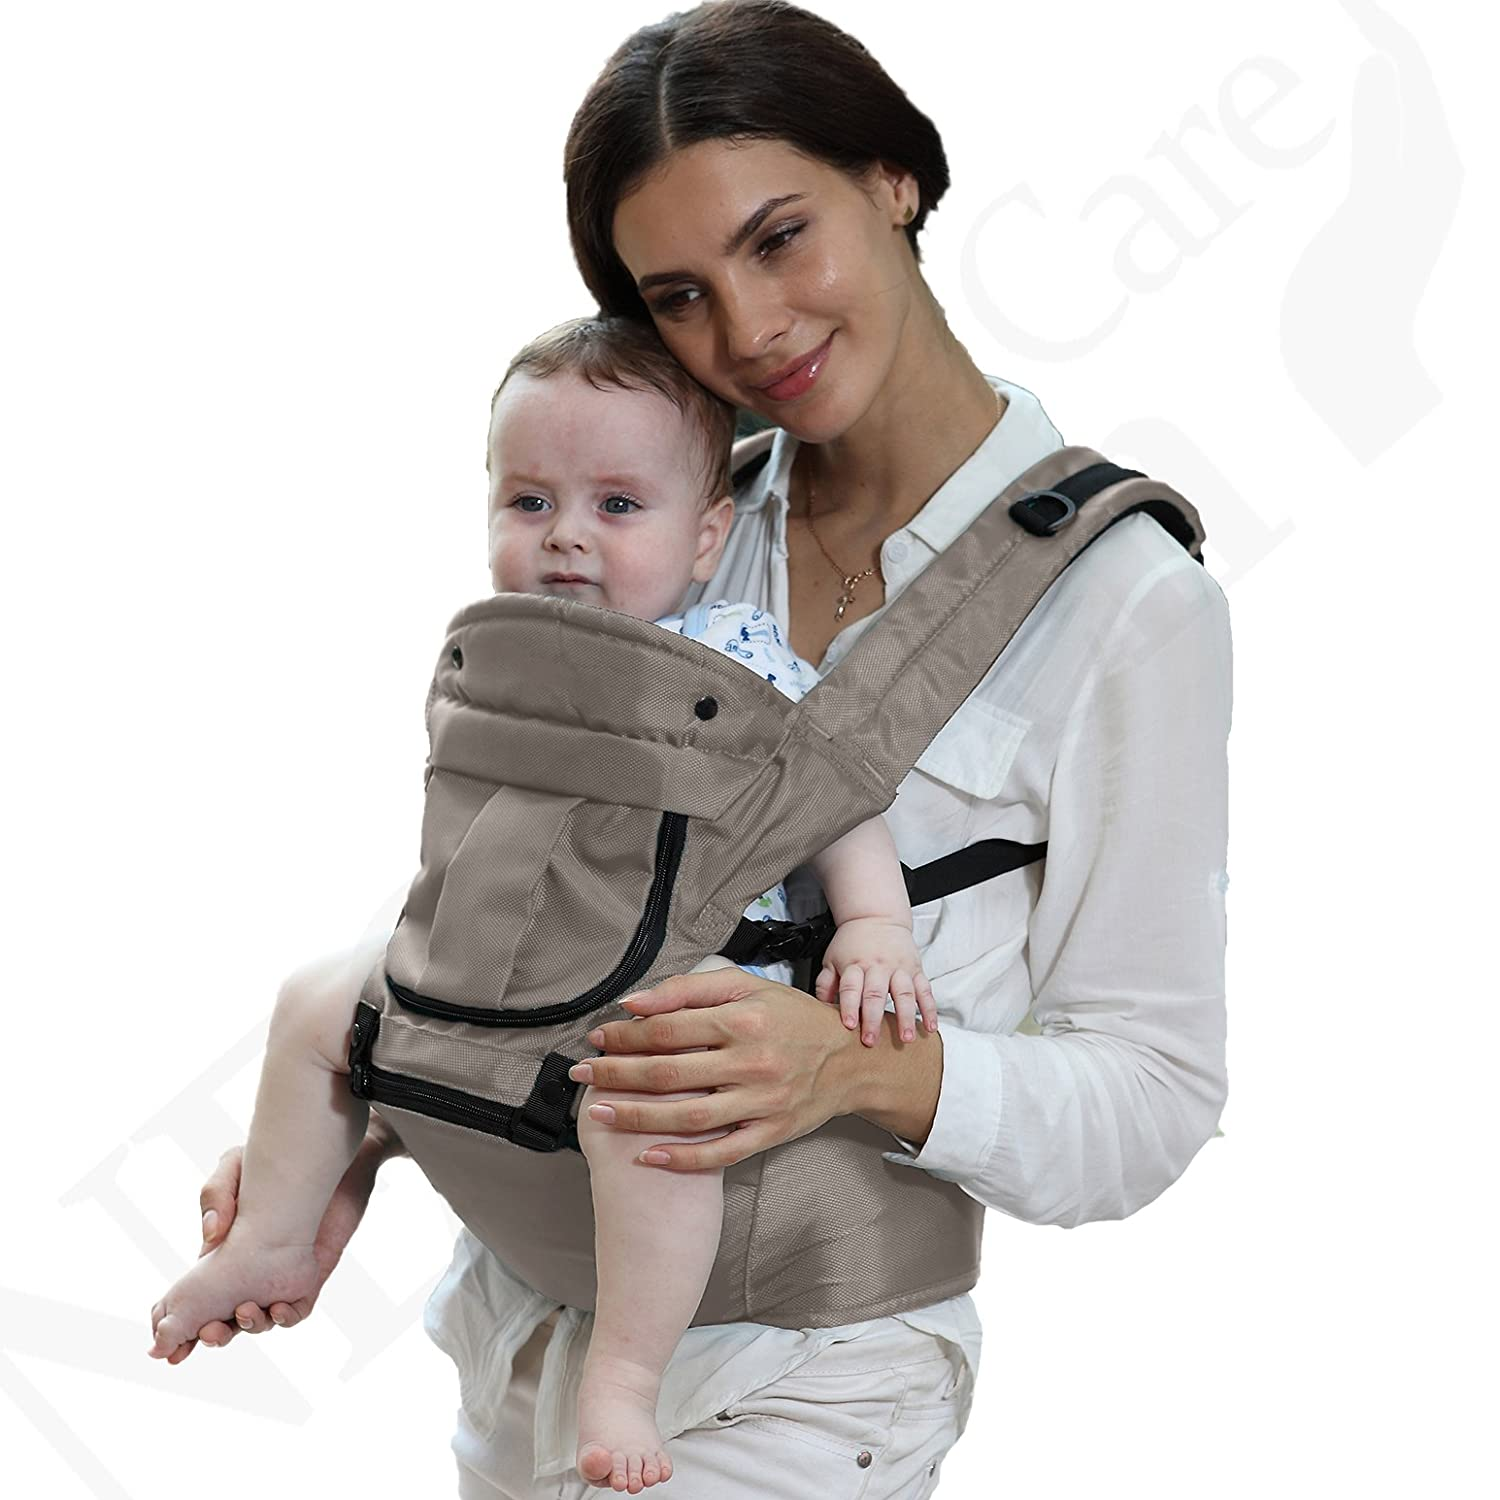 Baby Carrier Hip Seat 100% Cotton - Removable Hoodie - Adjustable - Neotech Care Brand - For Infant, Child, Toddler - Grey NTC-BC018 Grey